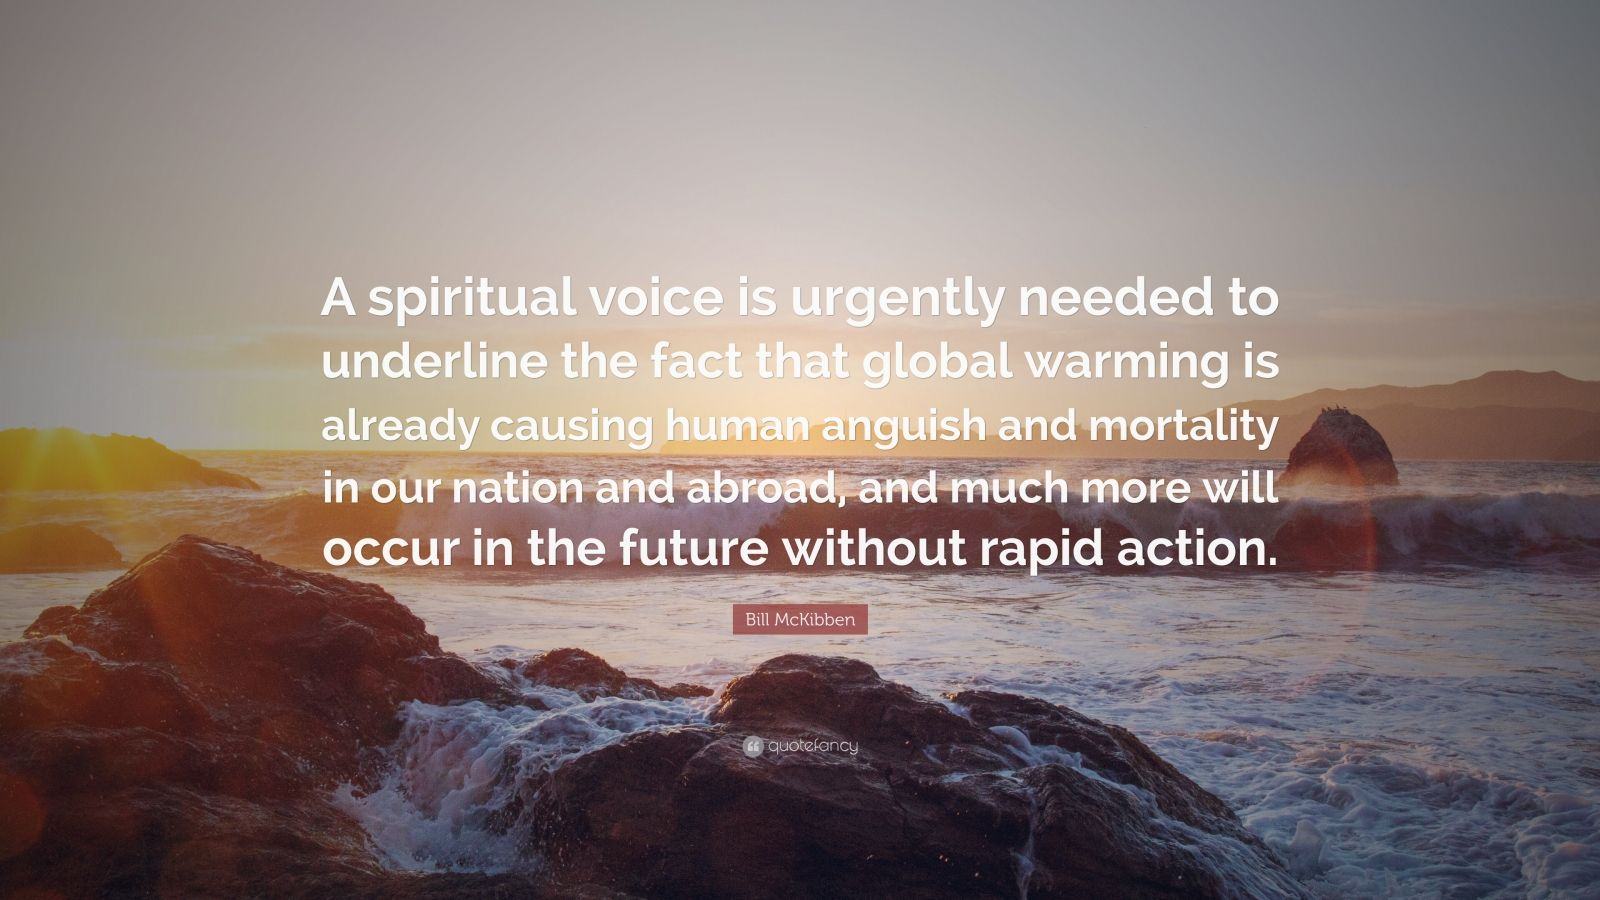 """Bill McKibben Quote: """"A spiritual voice is urgently needed to underline the fact that global warming is already causing human anguish and mortality in our nation and abroad, and much more will occur in the future without rapid action."""""""